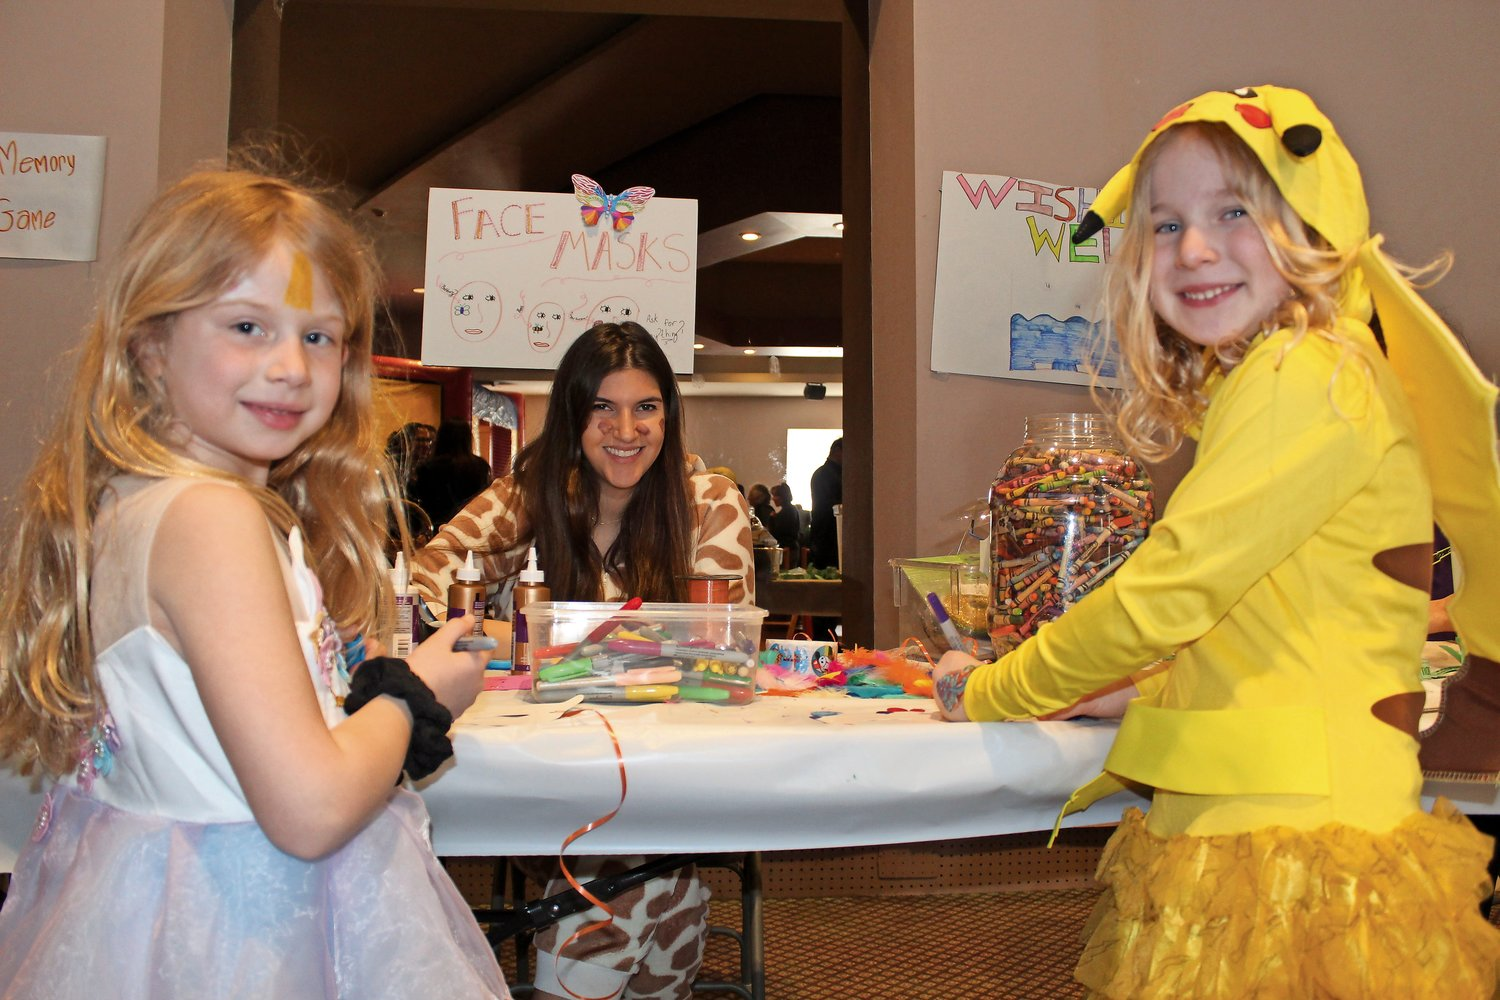 Julia Stroot, left, and Eliana Ecker, right, got some help making Purim masks from teen volunteer Gaby Brichta.